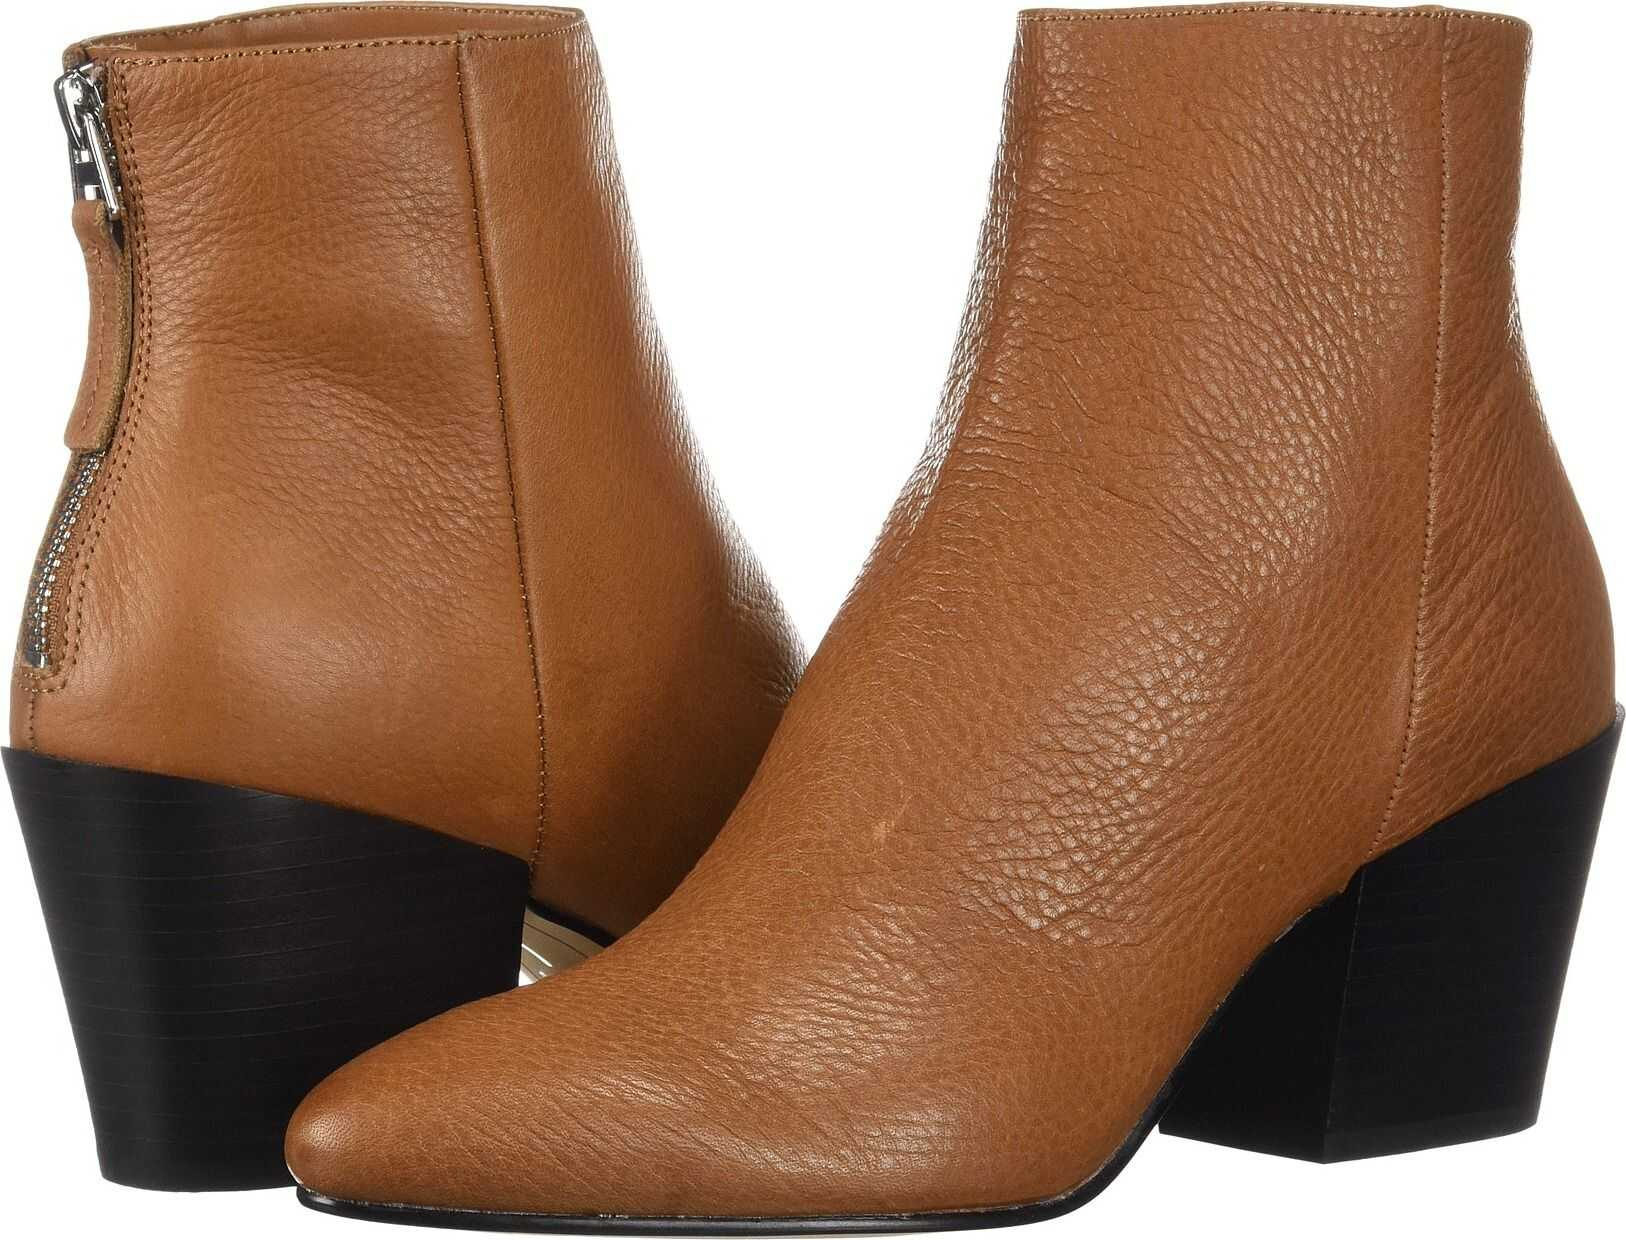 Dolce Vita Coltyn Brown Leather